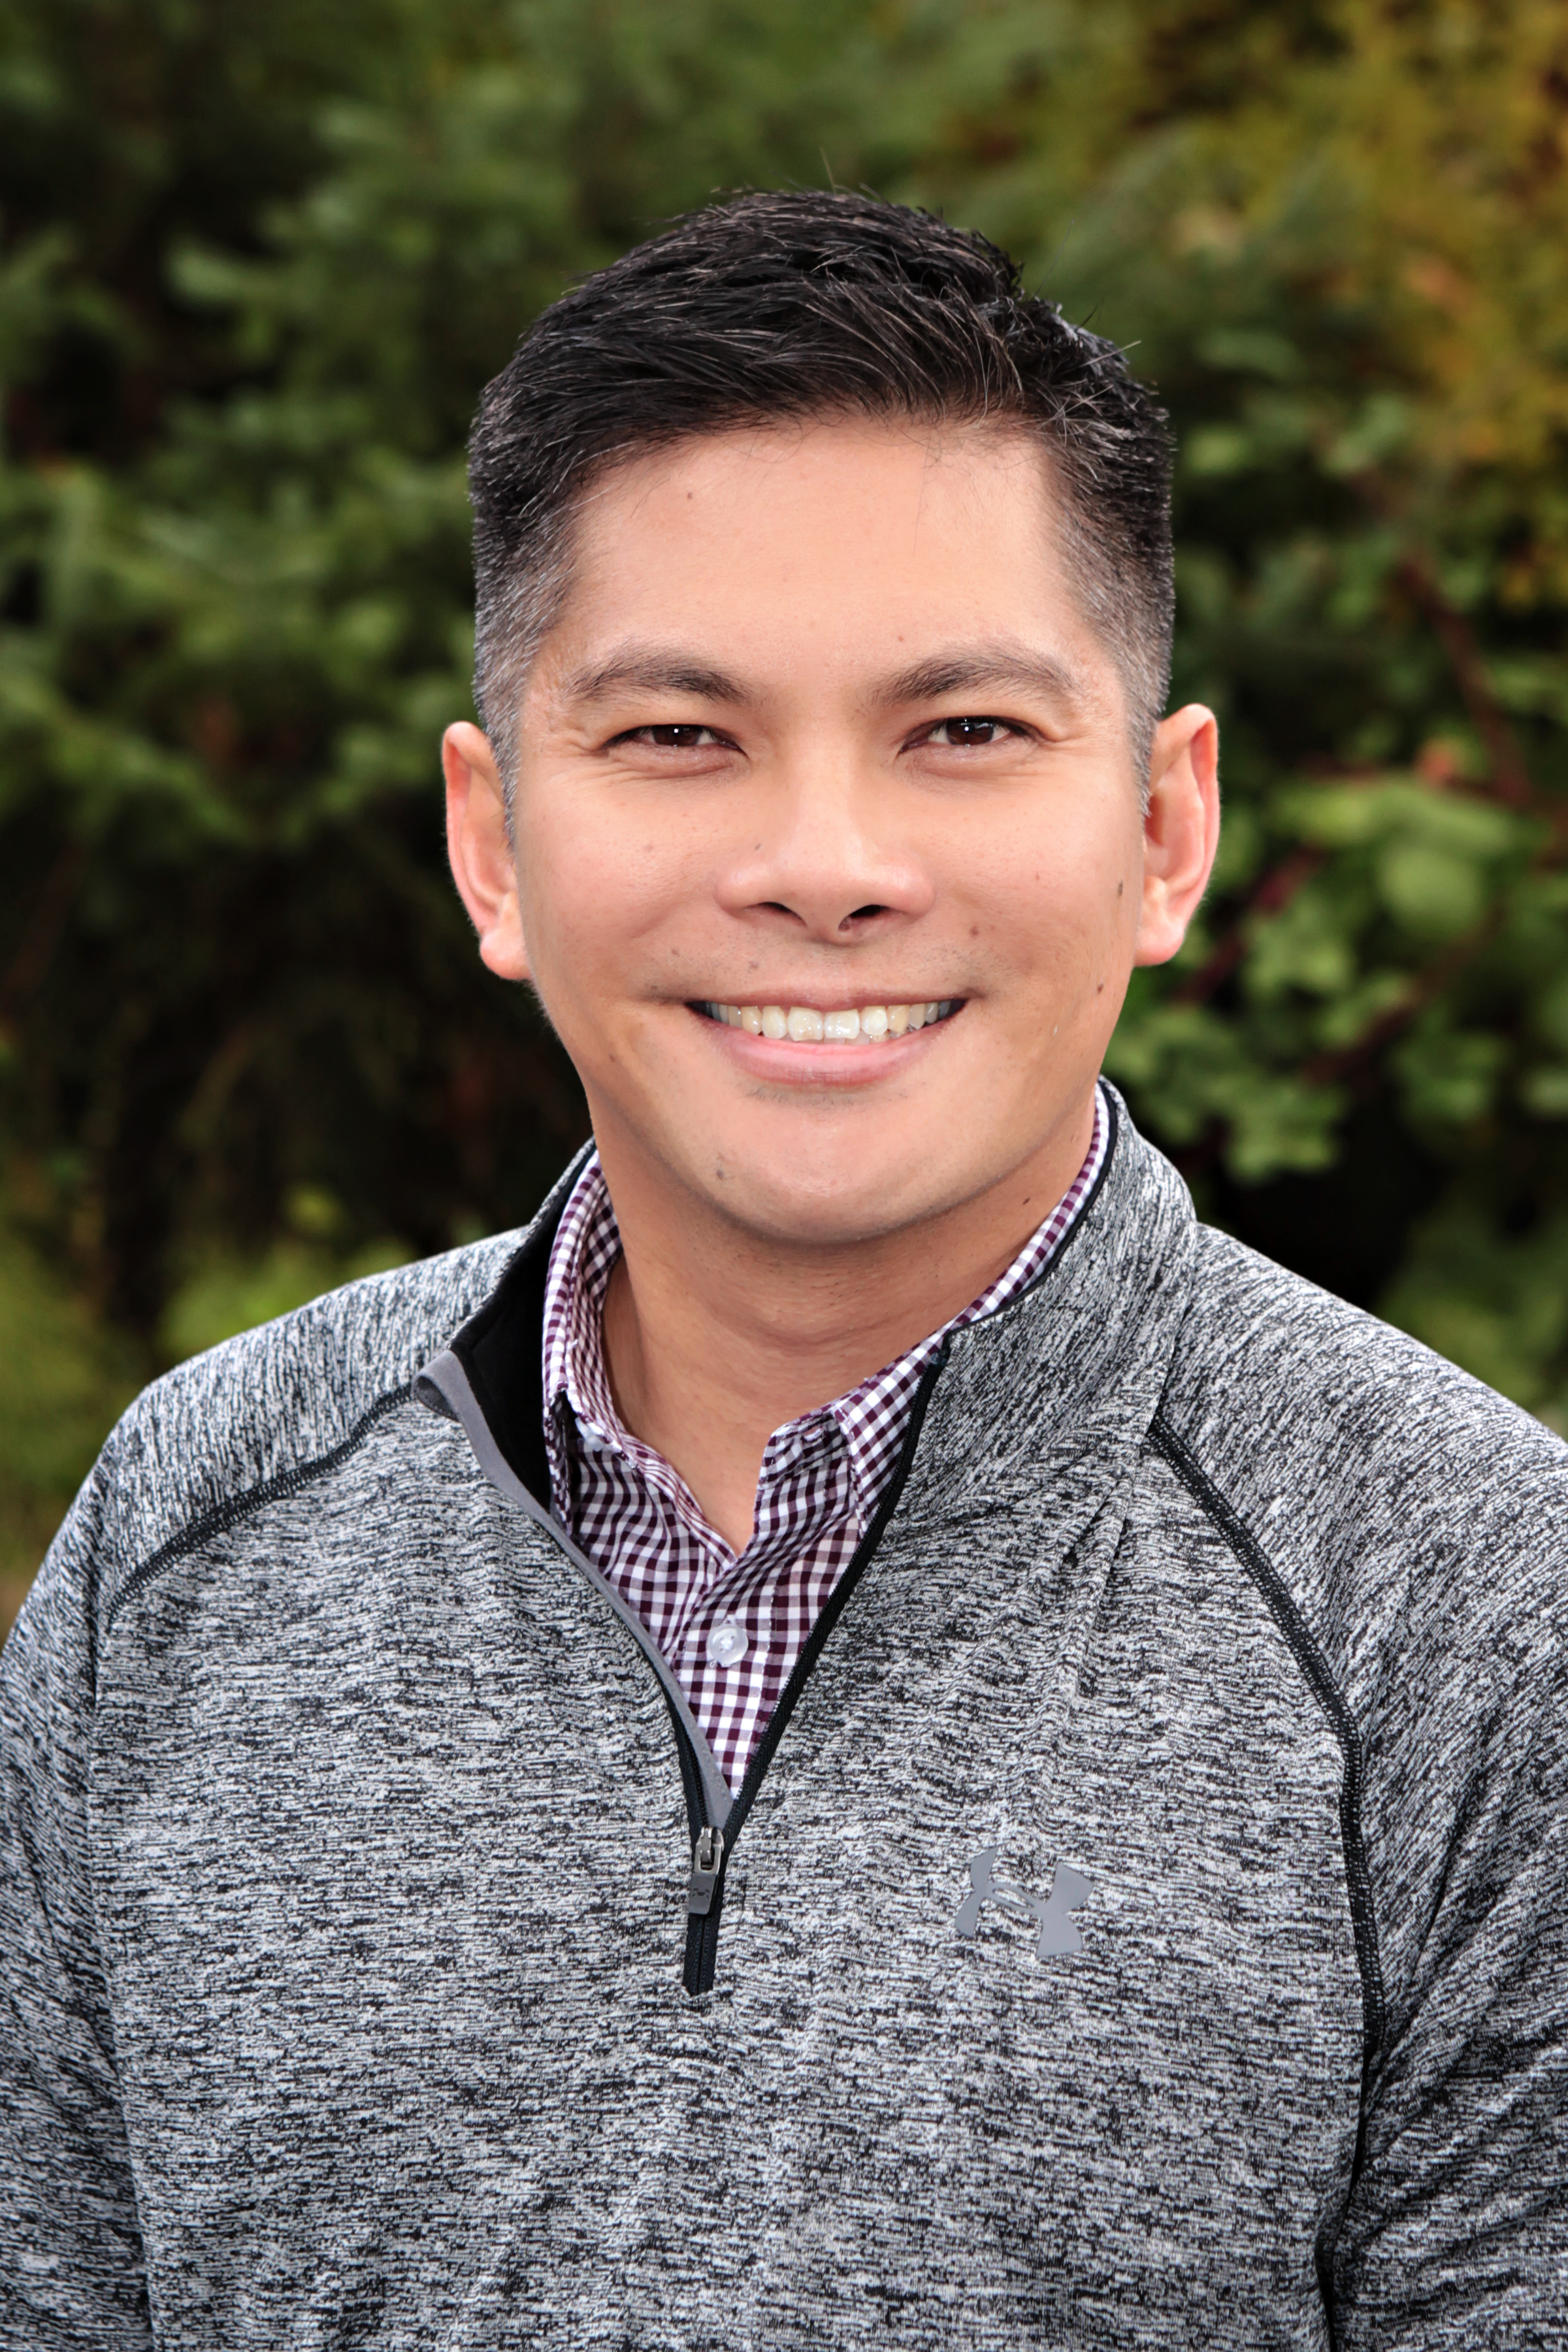 Mark Jamantoc in front of trees wearing a gray jacket